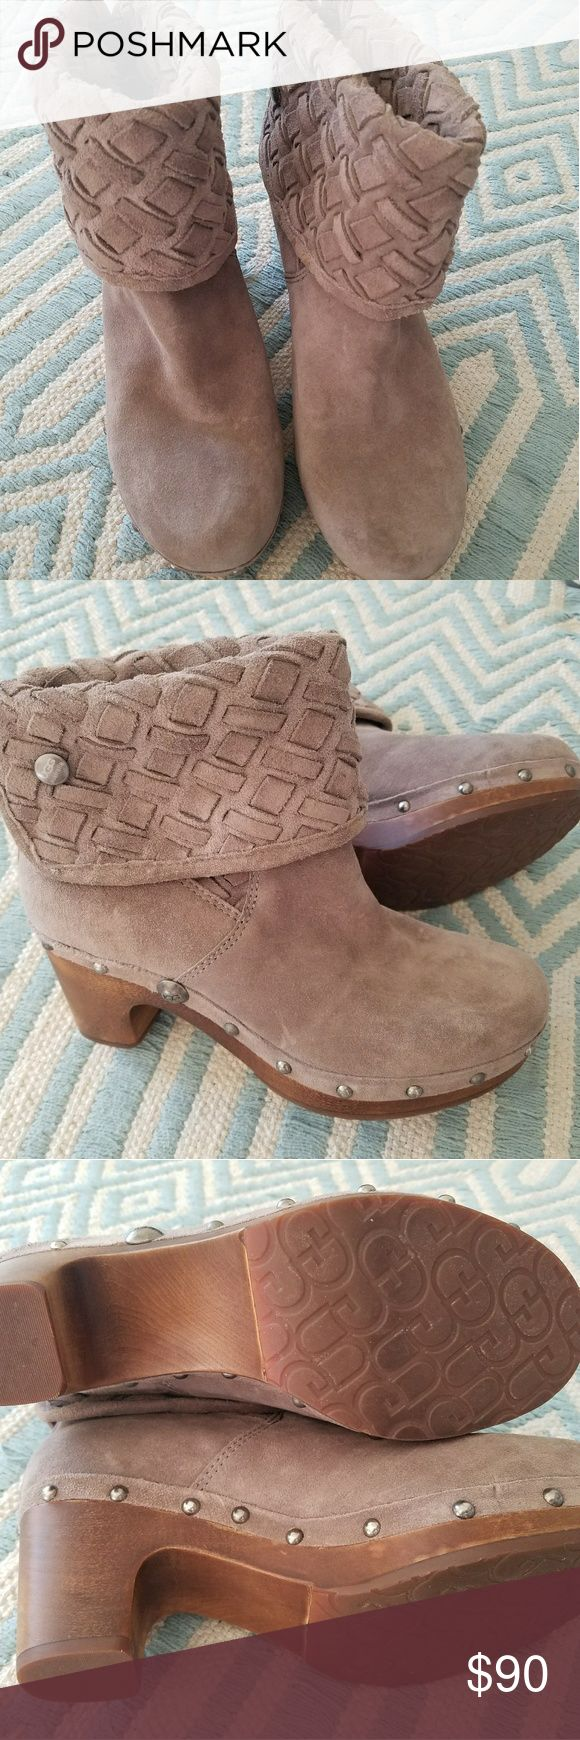 UGG Lynnea Arroyo Weave Gray Suede boots. Size 7. Brand new. Unworn. UGG Shoes Ankle Boots & Booties